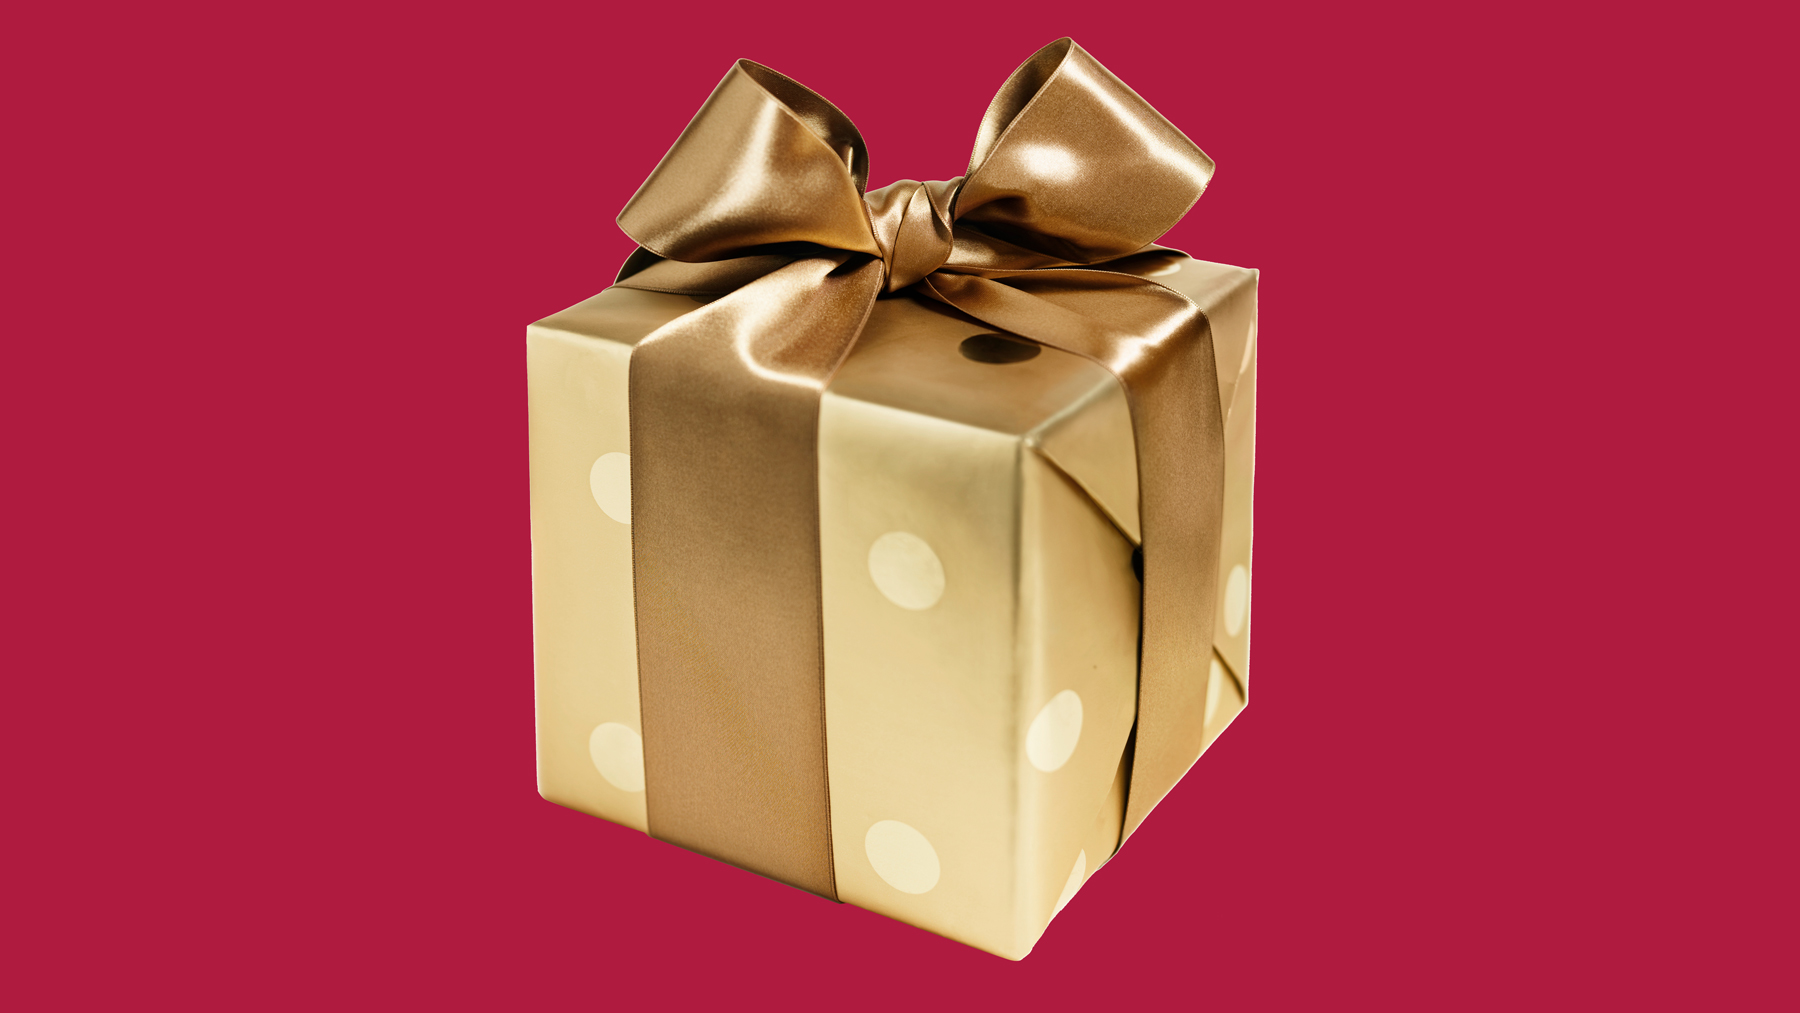 Gift exchange ideas - games, ideas, and more for Christmas gift exchanges